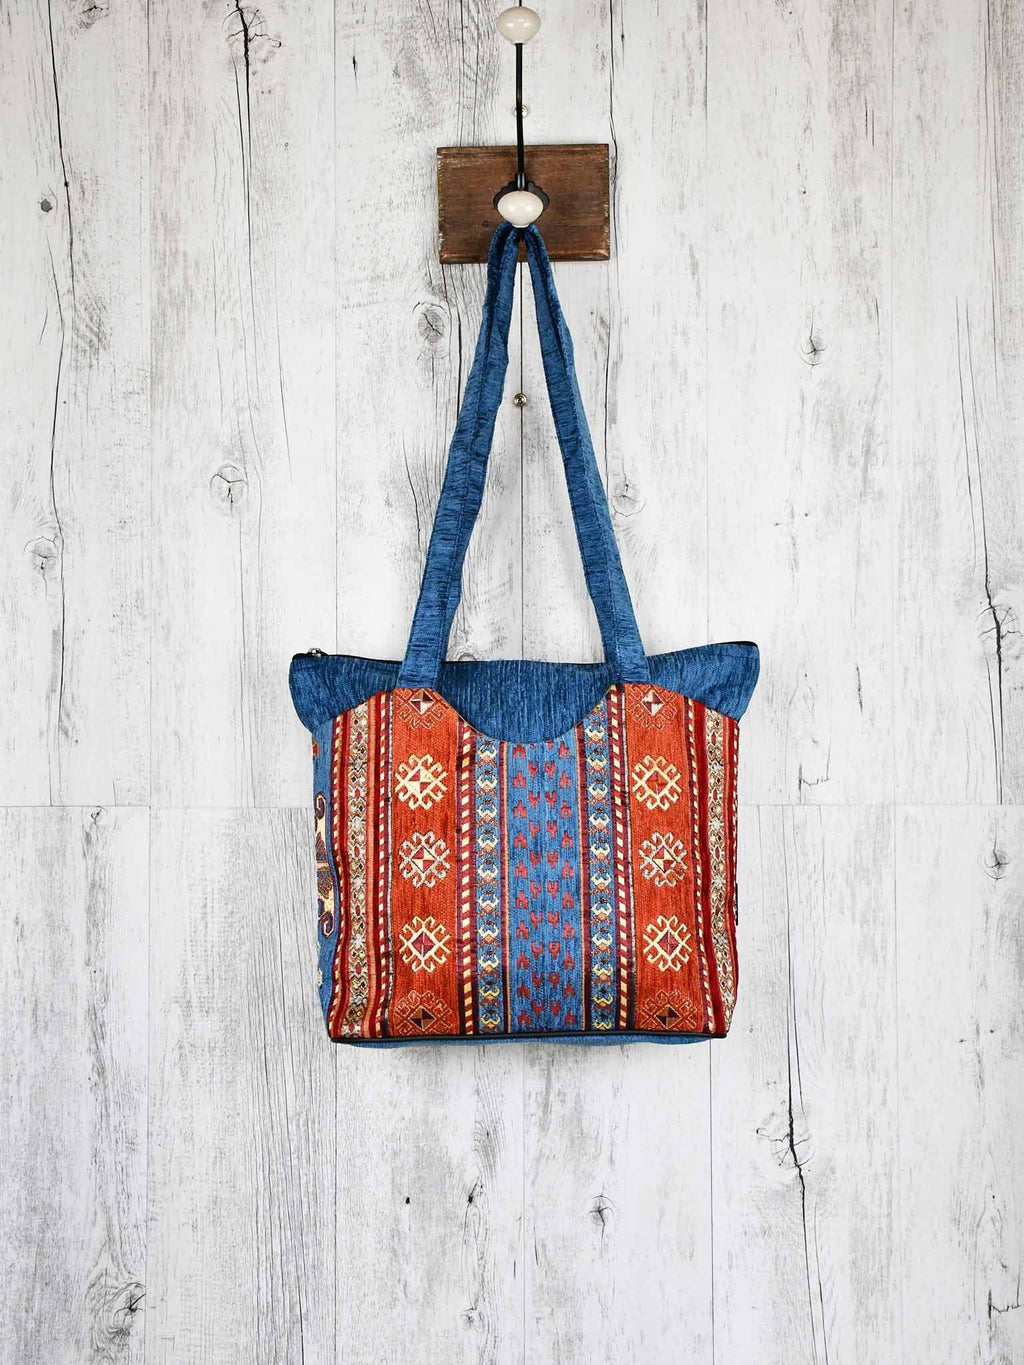 Turkish Handbag Tote Aztec Light Blue Rusty Textile Sydney Grand Bazaar